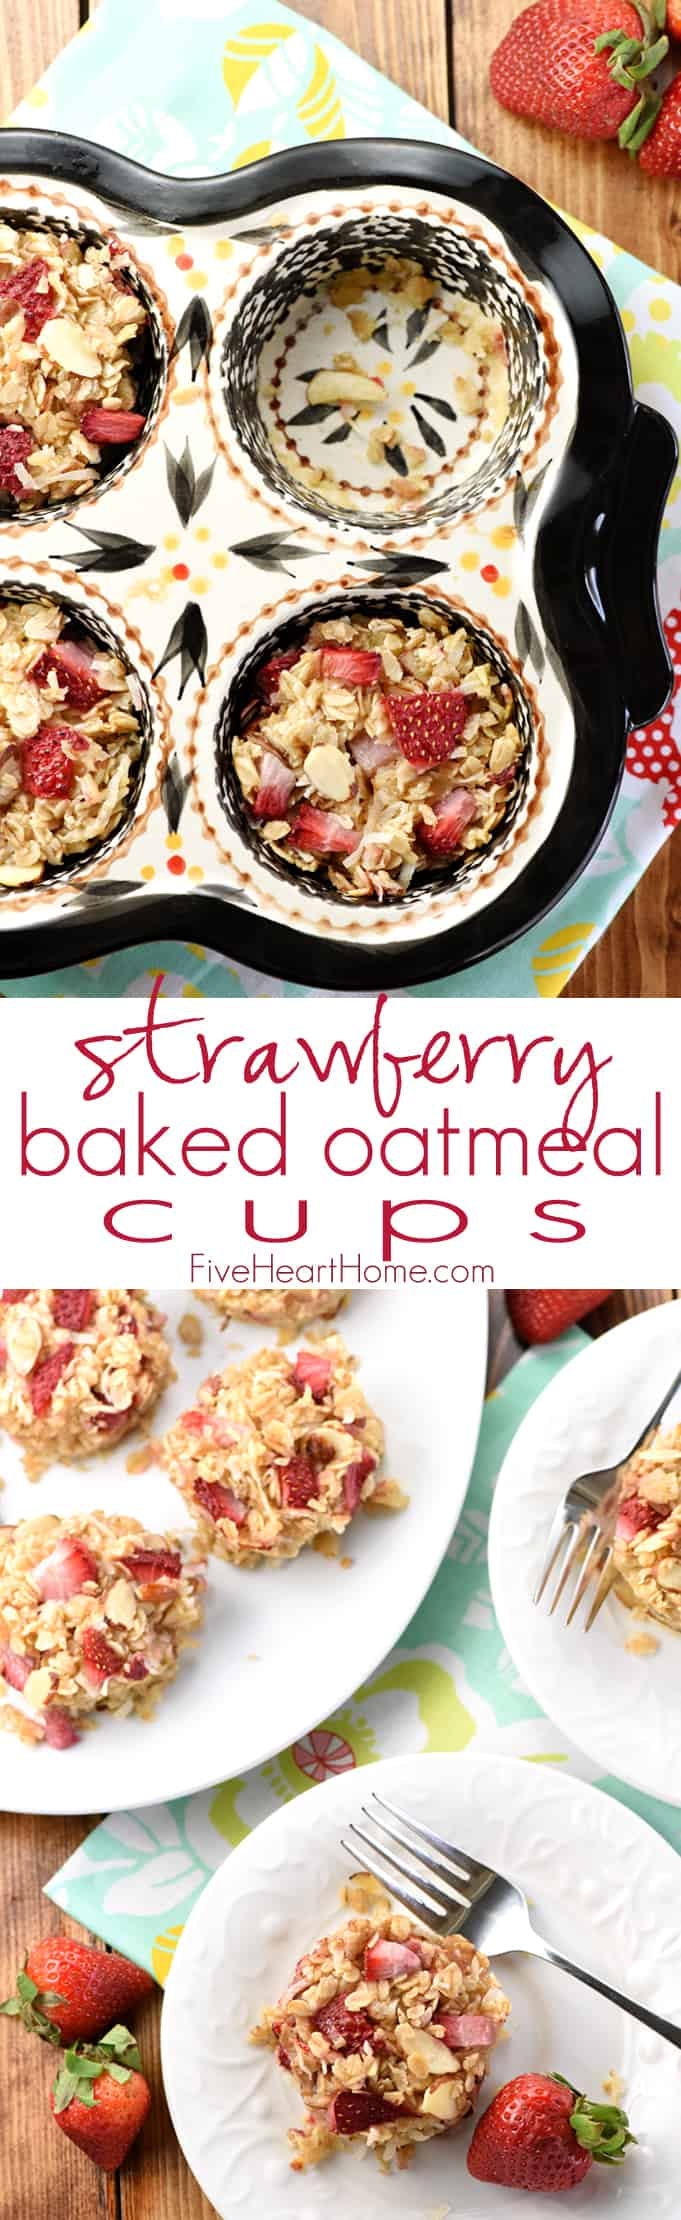 Strawberry Baked Oatmeal Cups Collage with Text Overlay